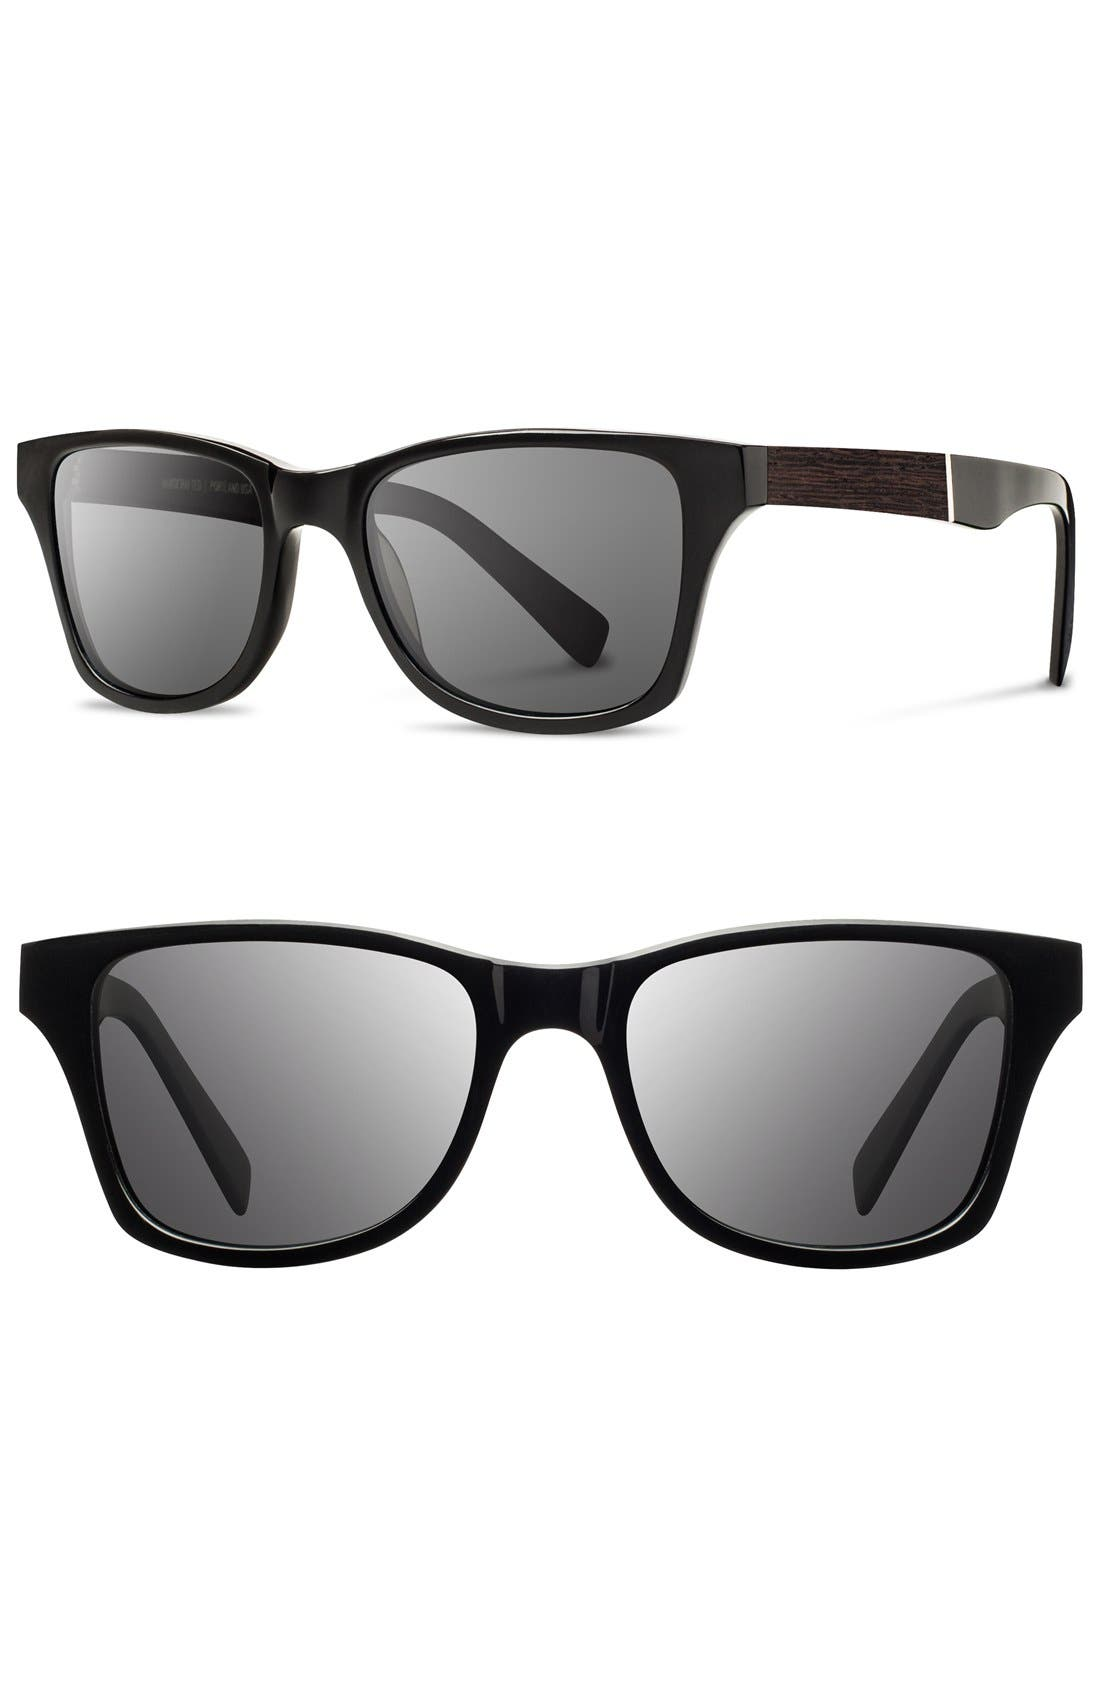 'Canby' 53mm Wood Sunglasses,                         Main,                         color, Black/ Ebony/ Grey